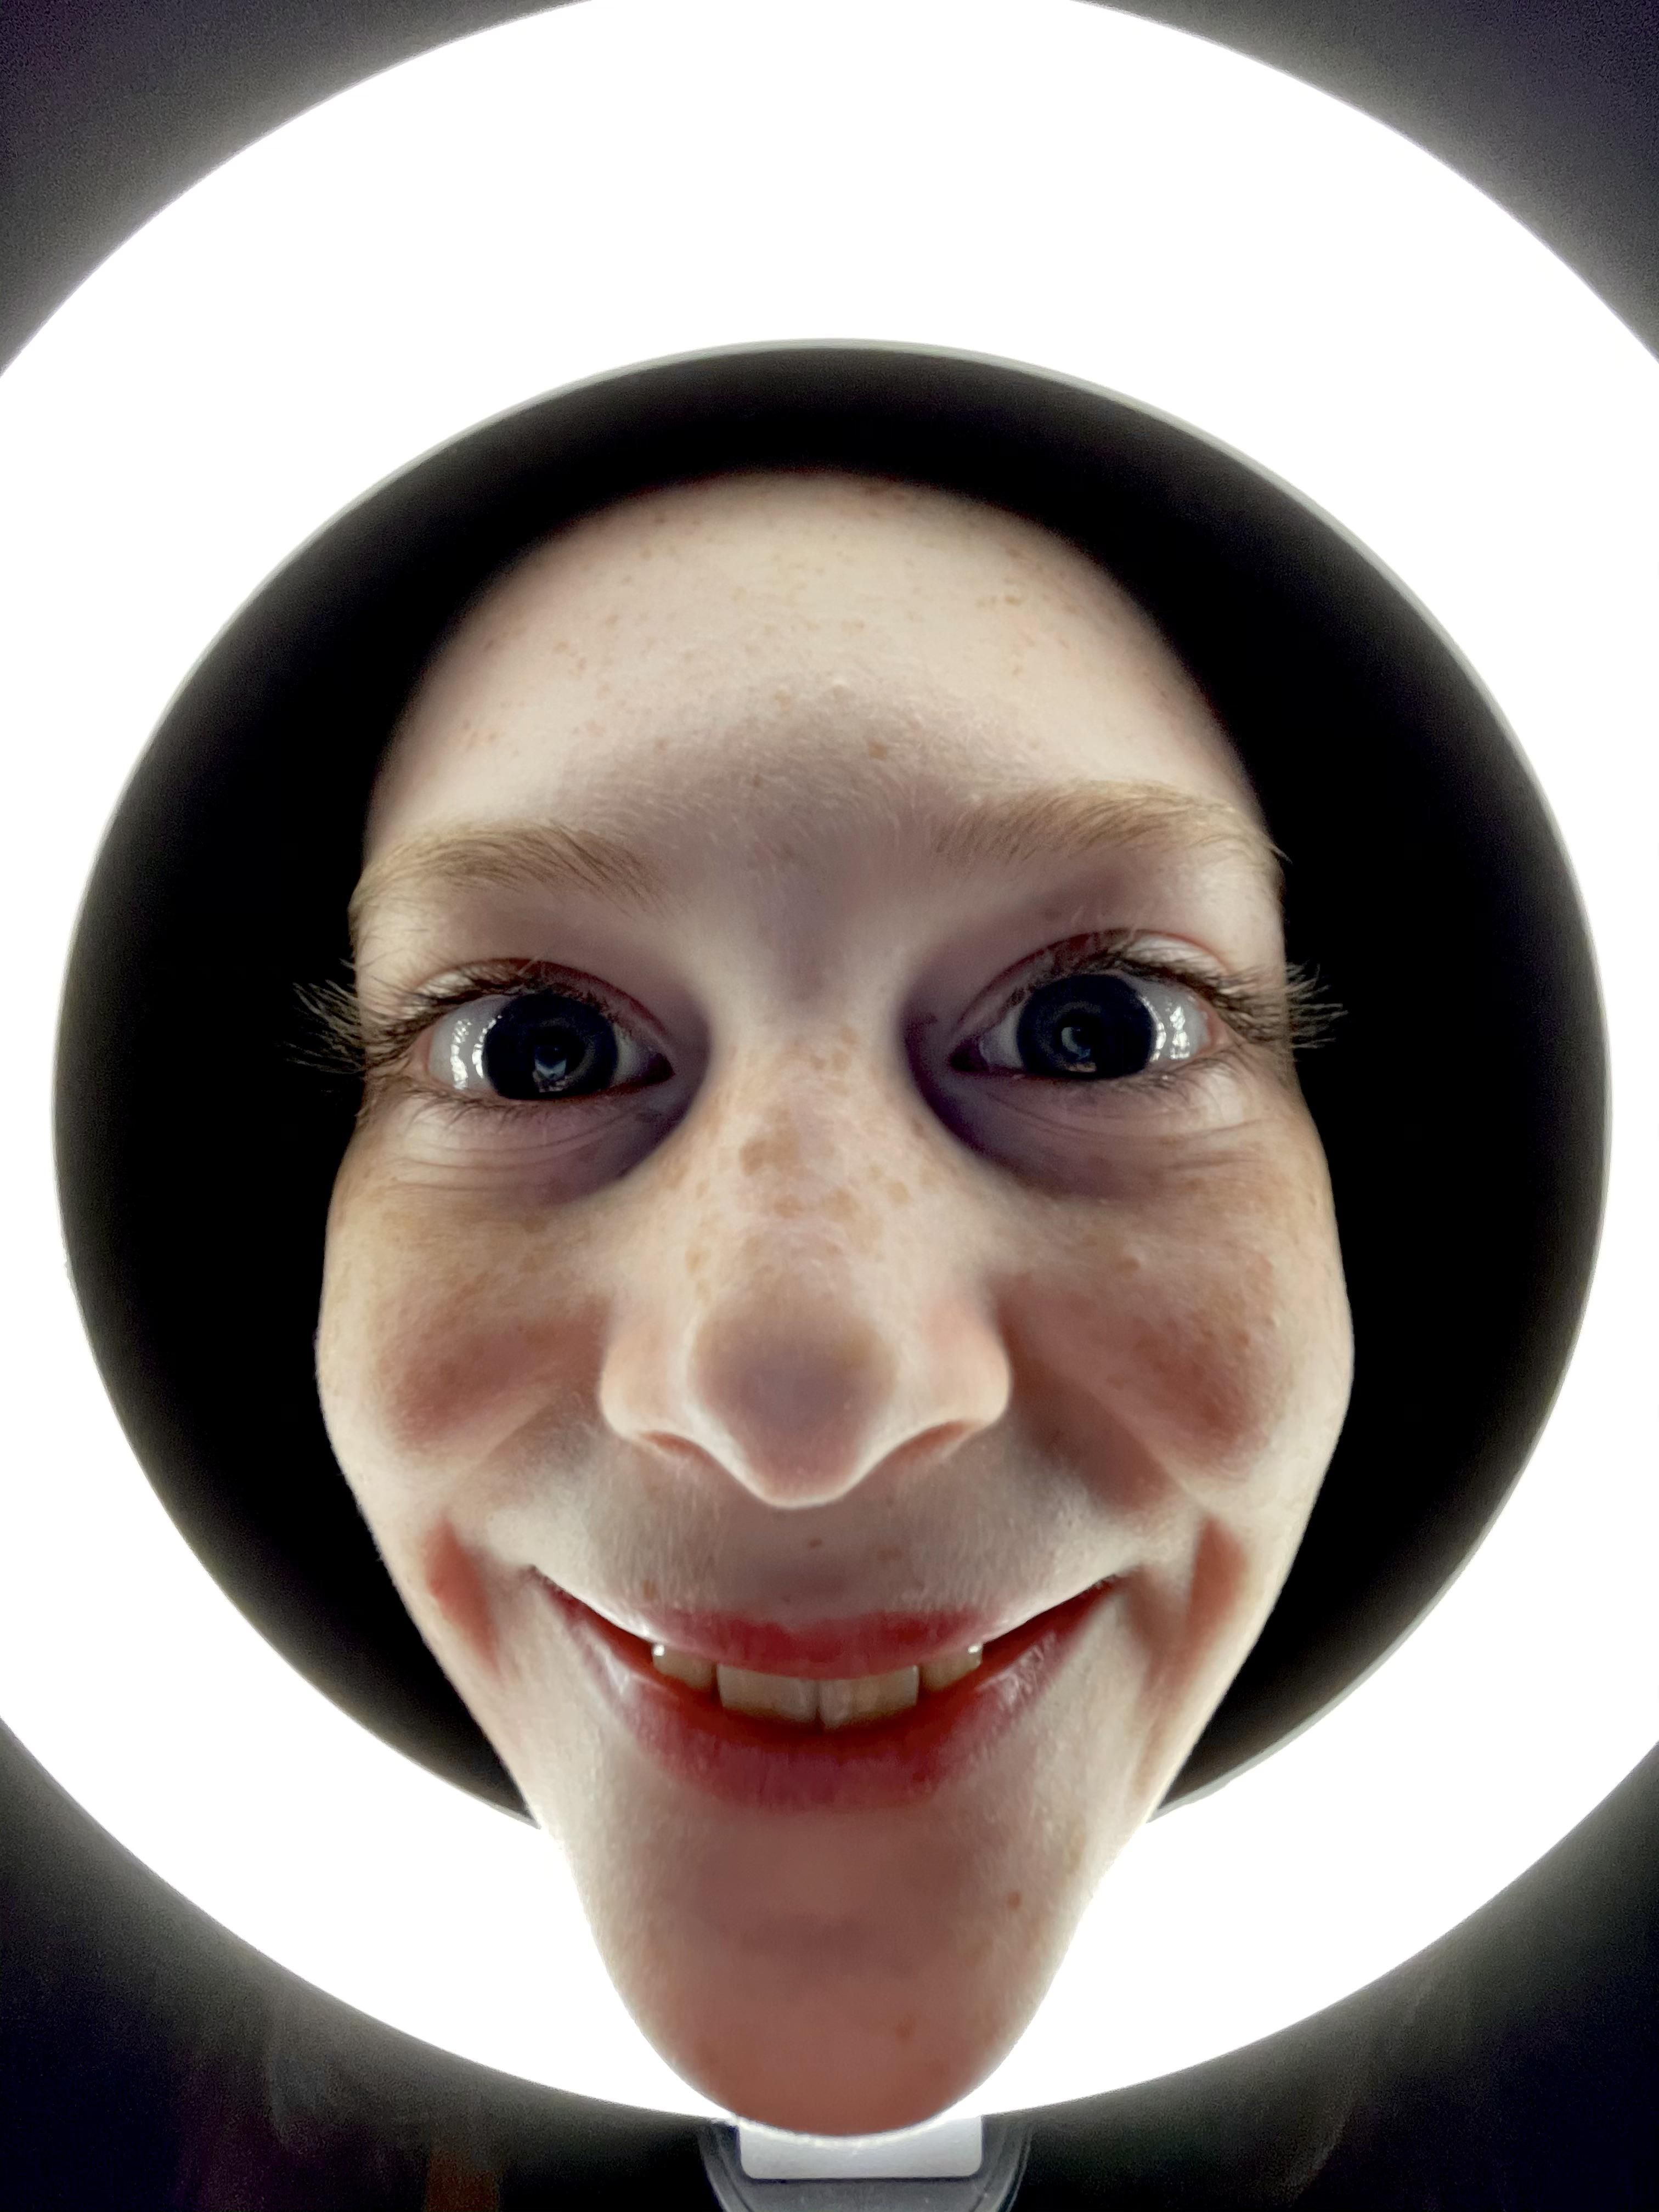 My daughter got a ring light for Christmas. Are we using it right?